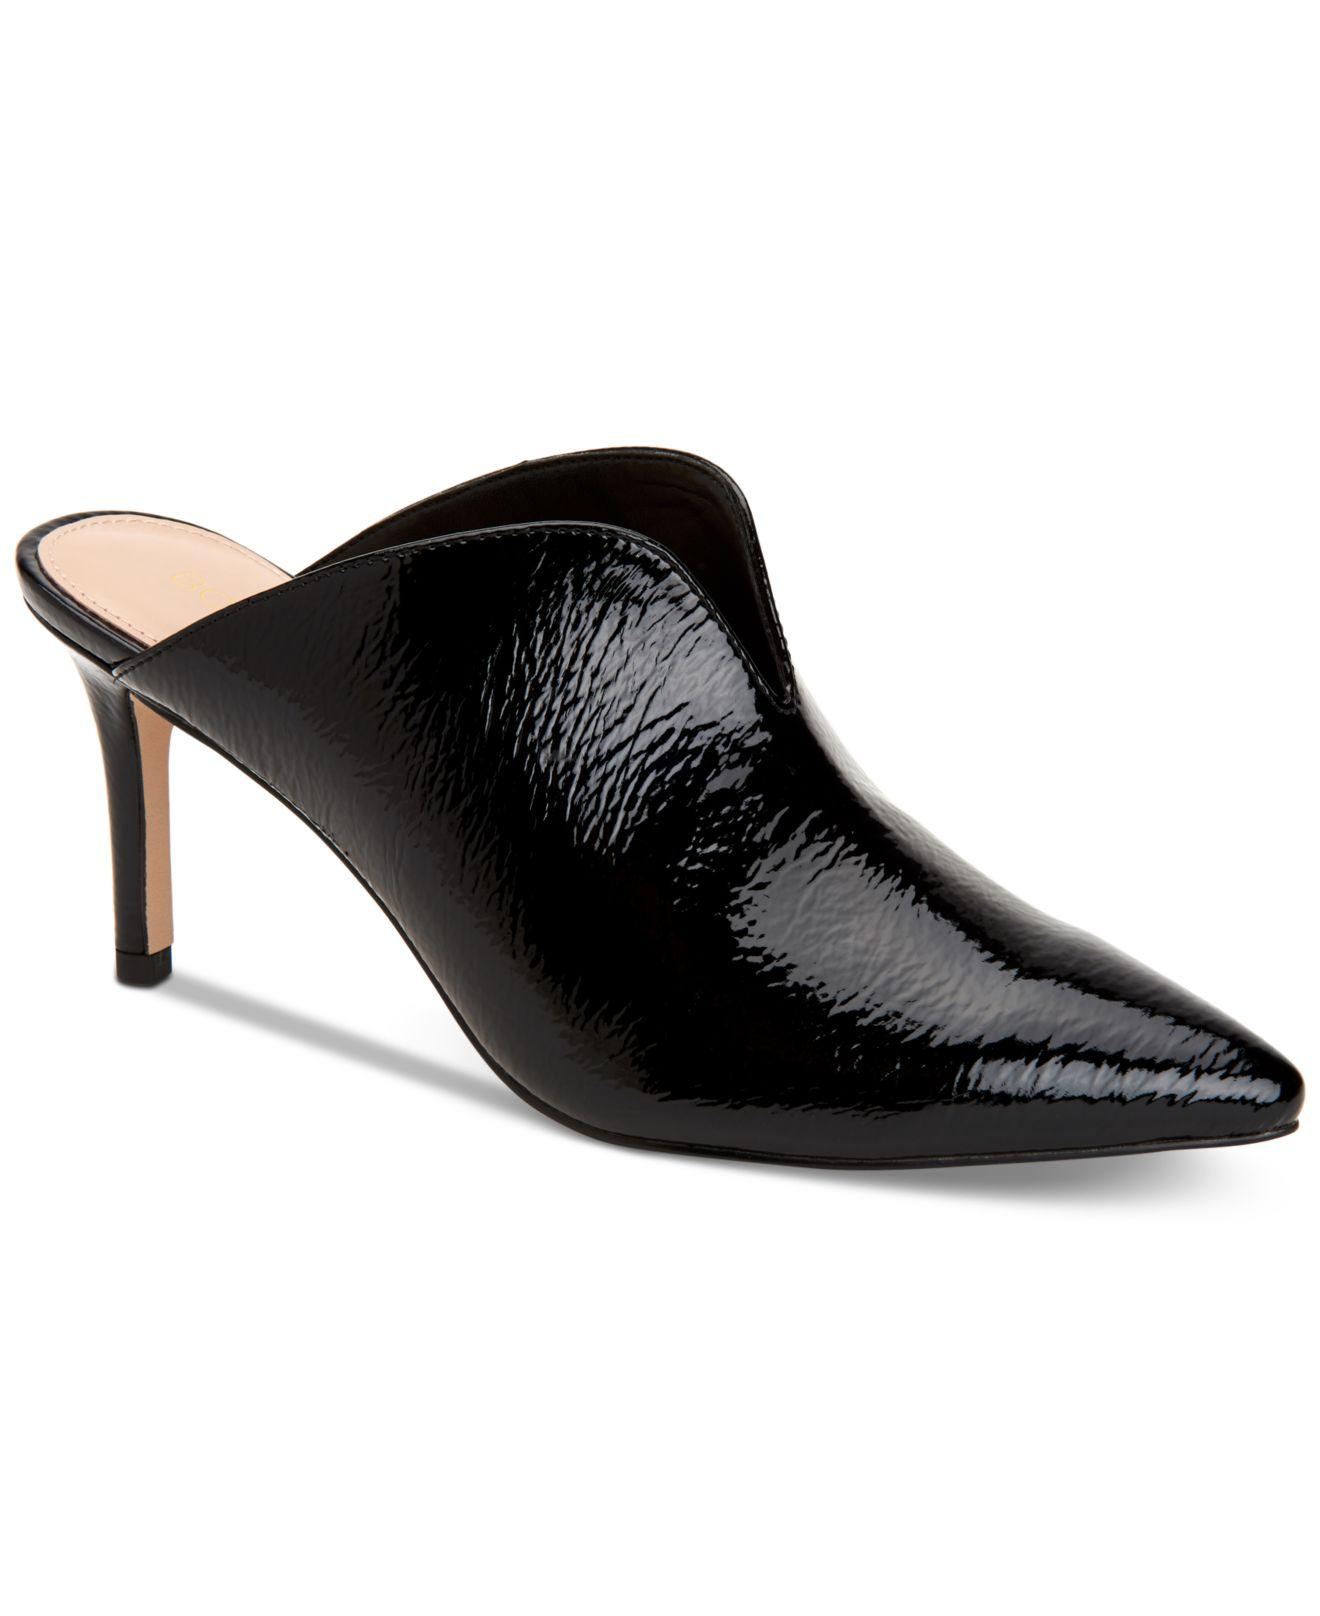 Malena V-Cut Patent Leather Mules fcRR17